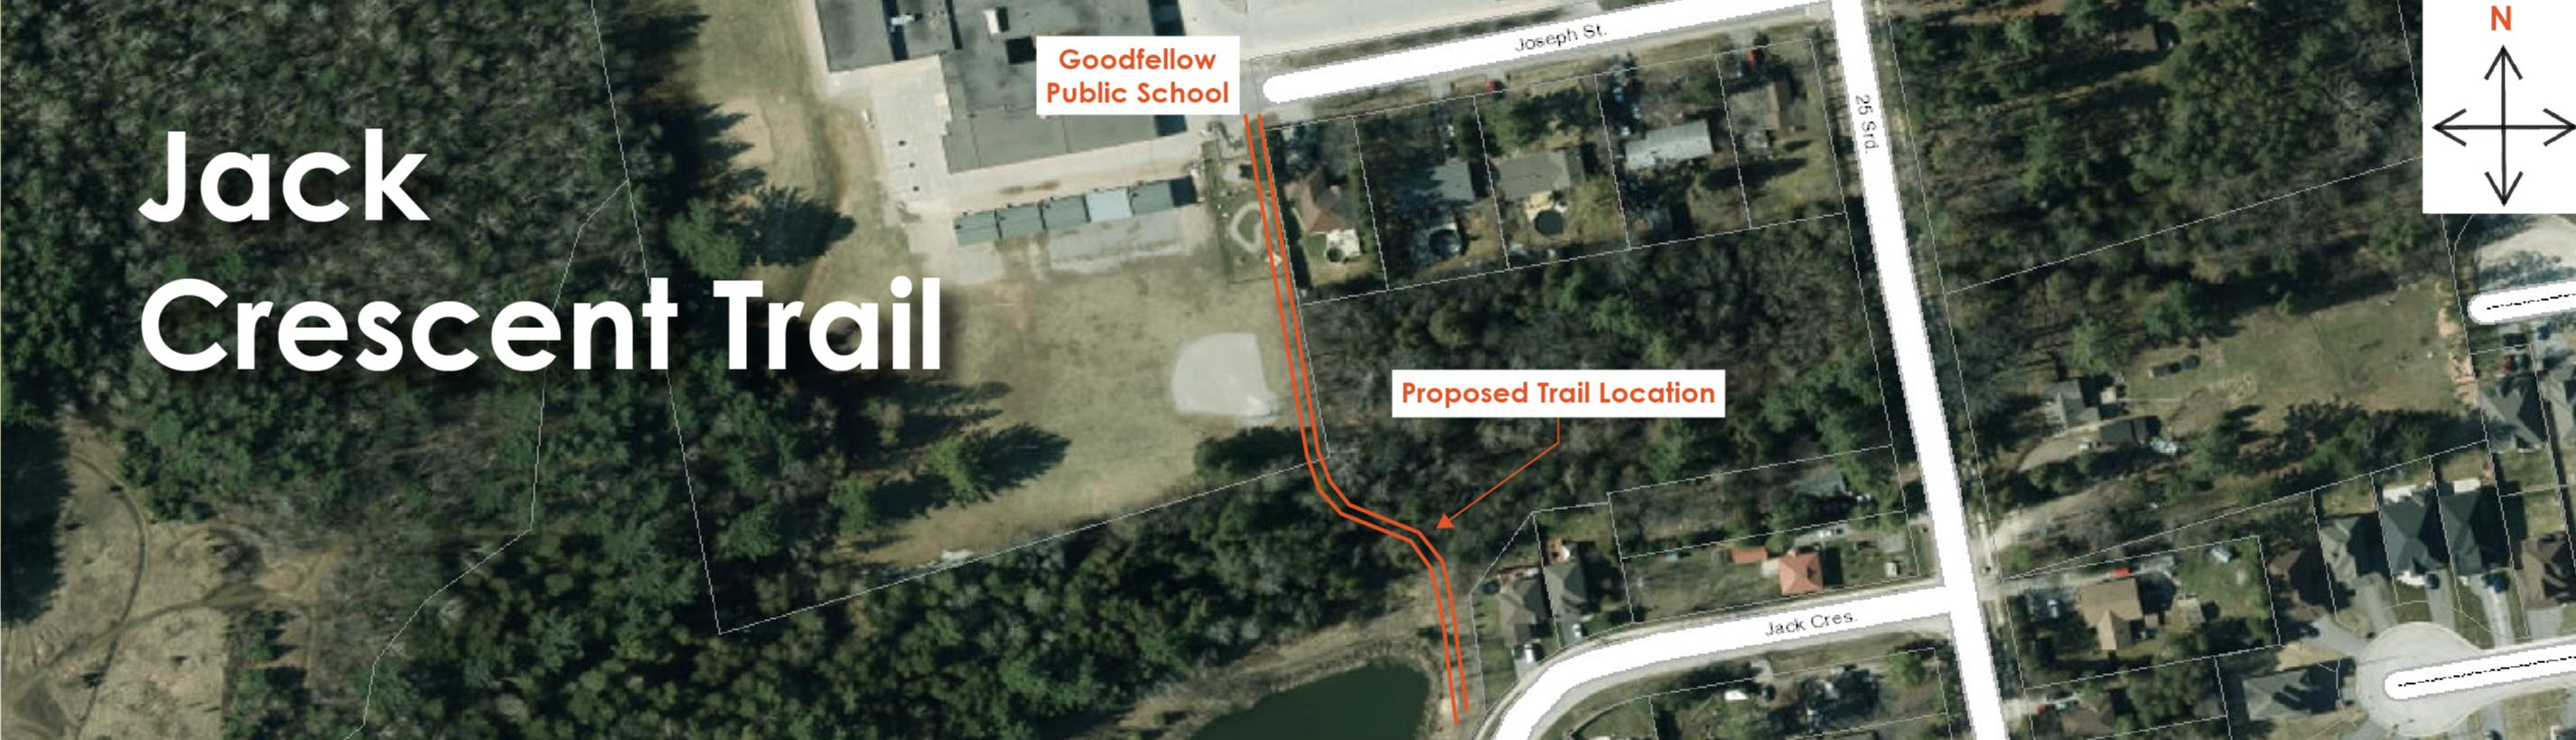 Proposed Jack Crescent Trail to Goodfellow Public School